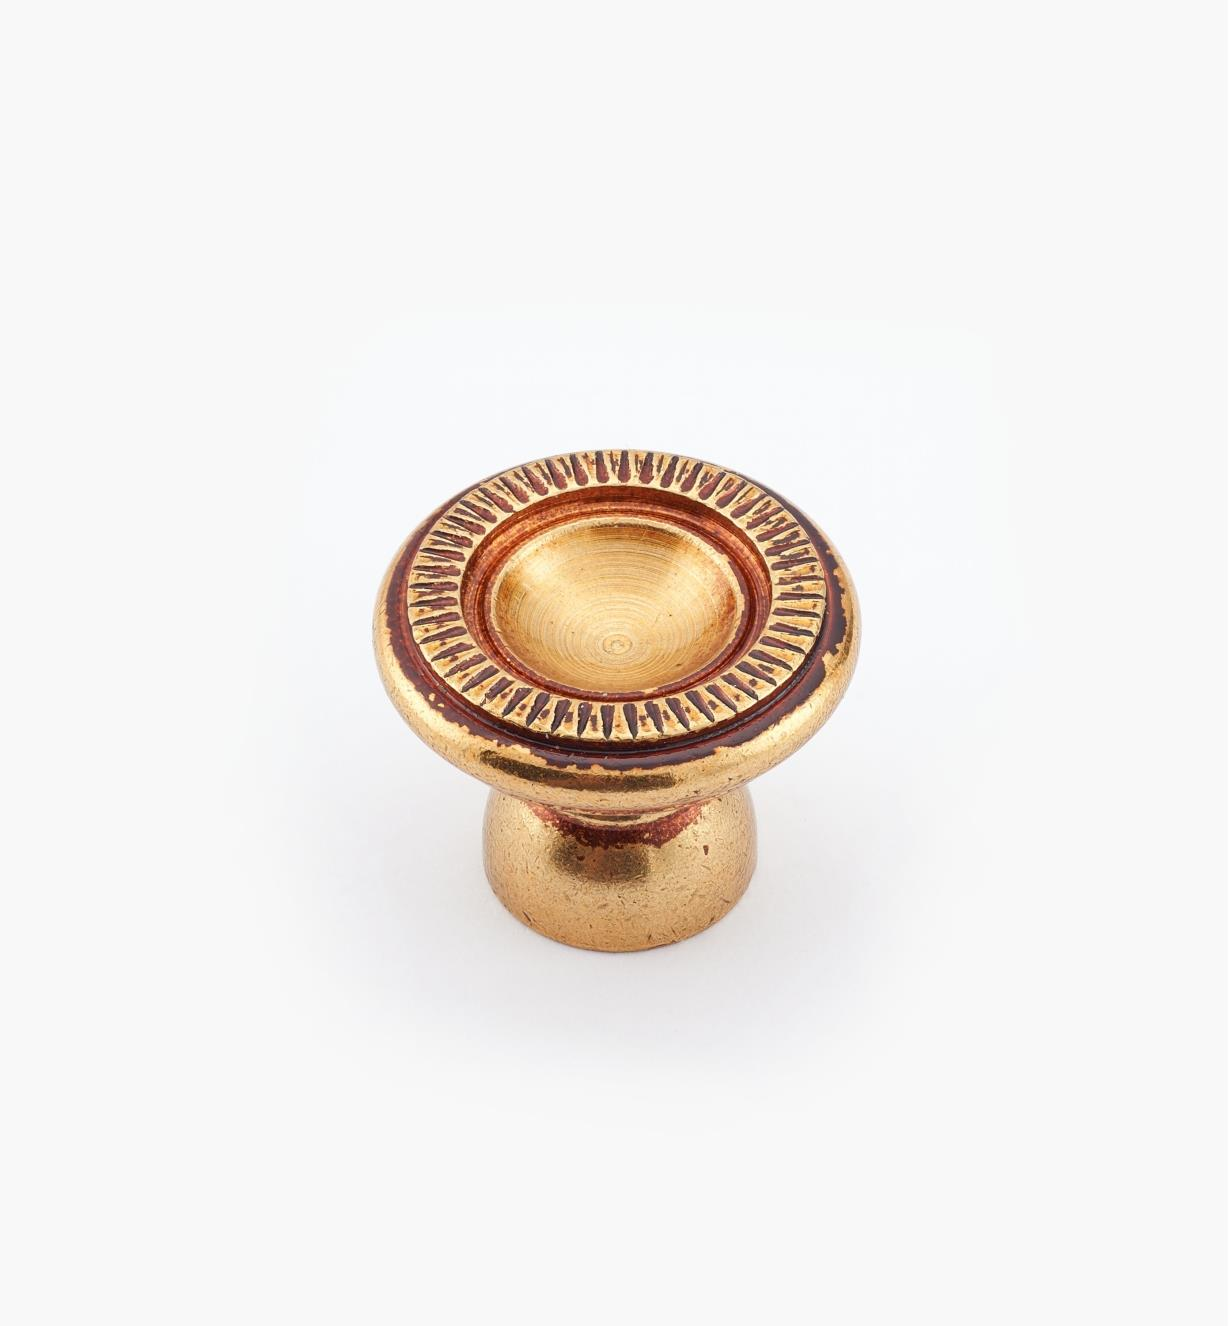 01A5881 -20mm × 16mm Antique Bronze Knob